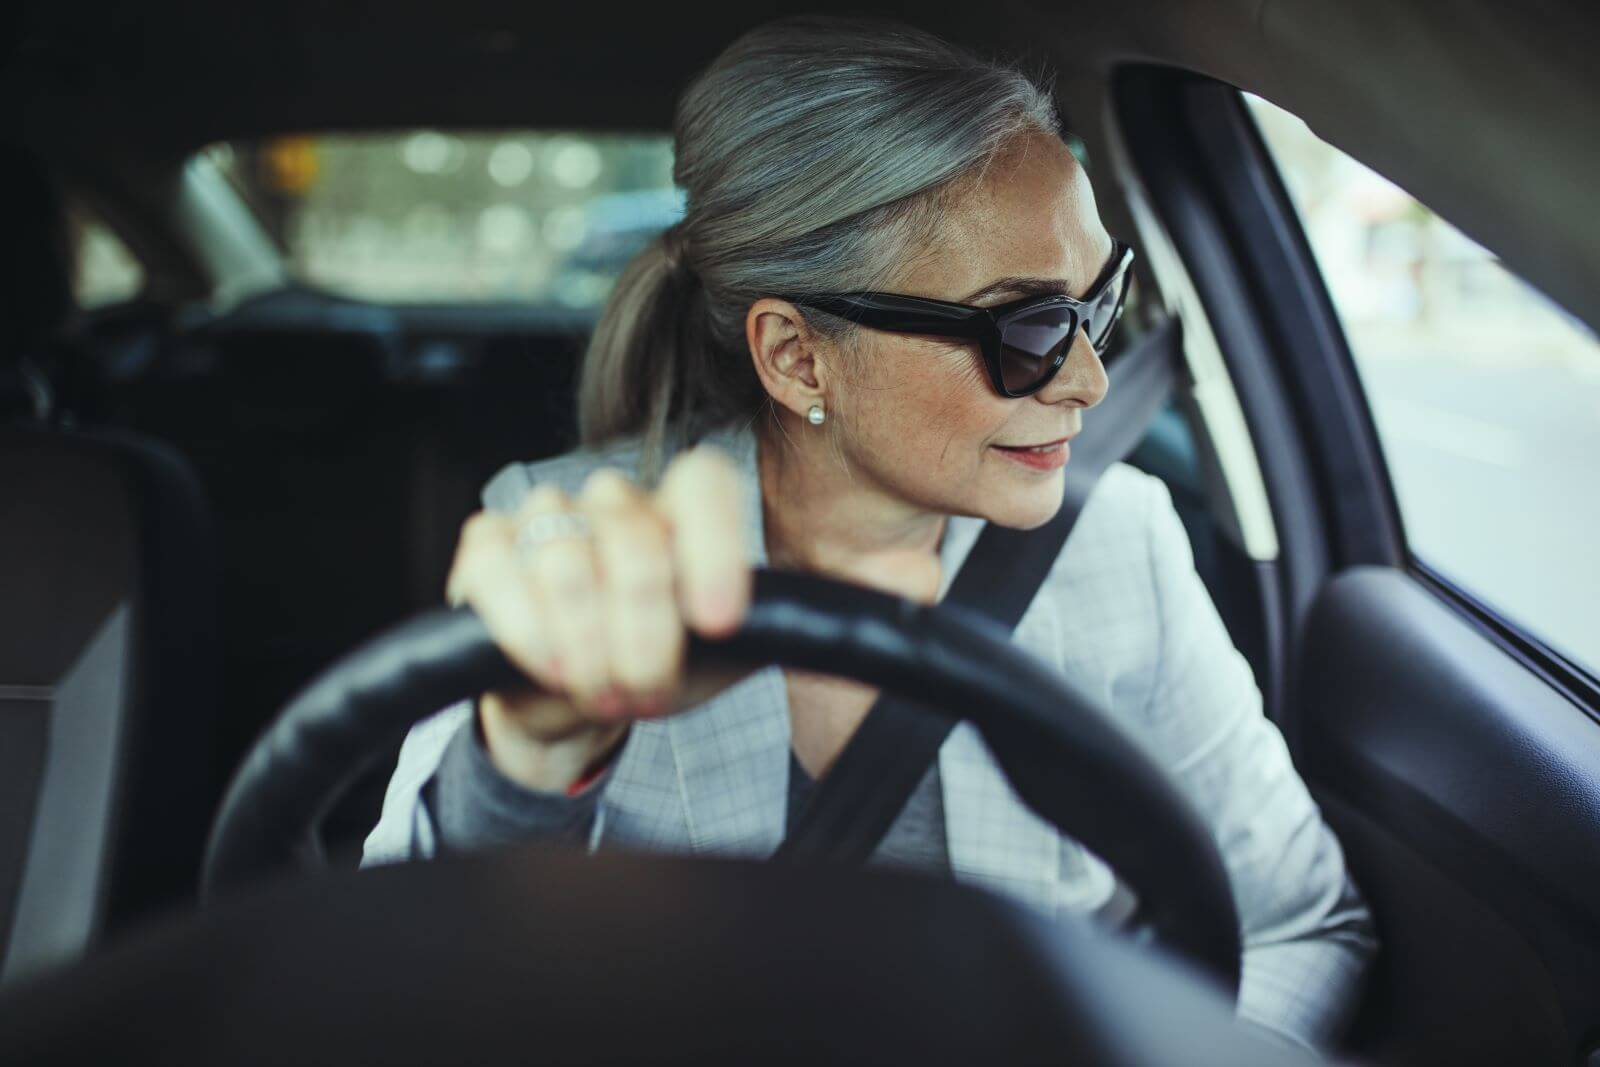 5 Tips for Driving with Hearing Loss